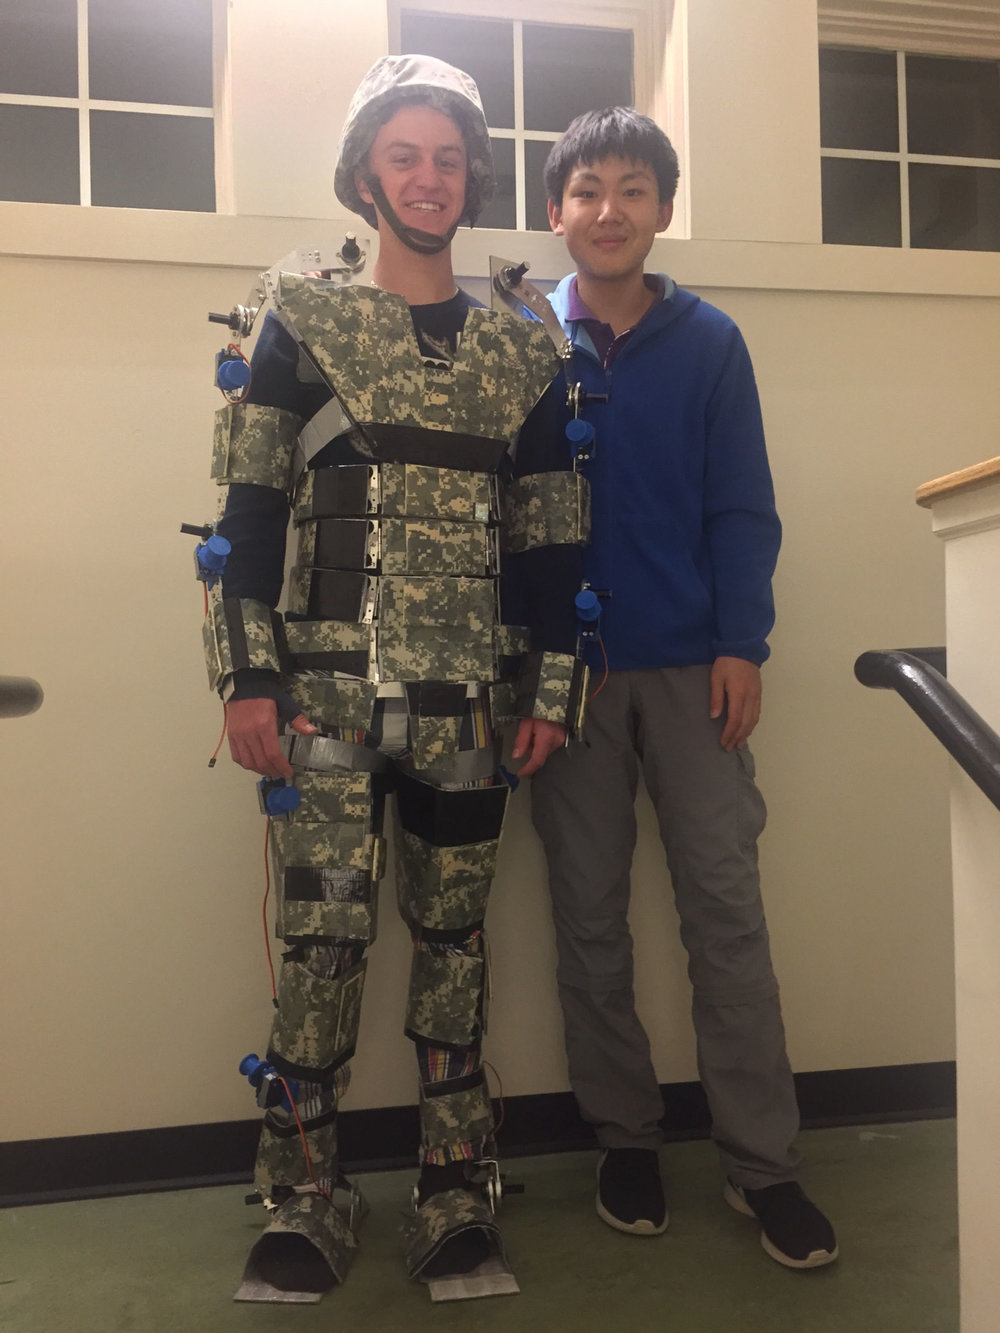 Jack Pearce modeling suit for inventor Nemo Chen